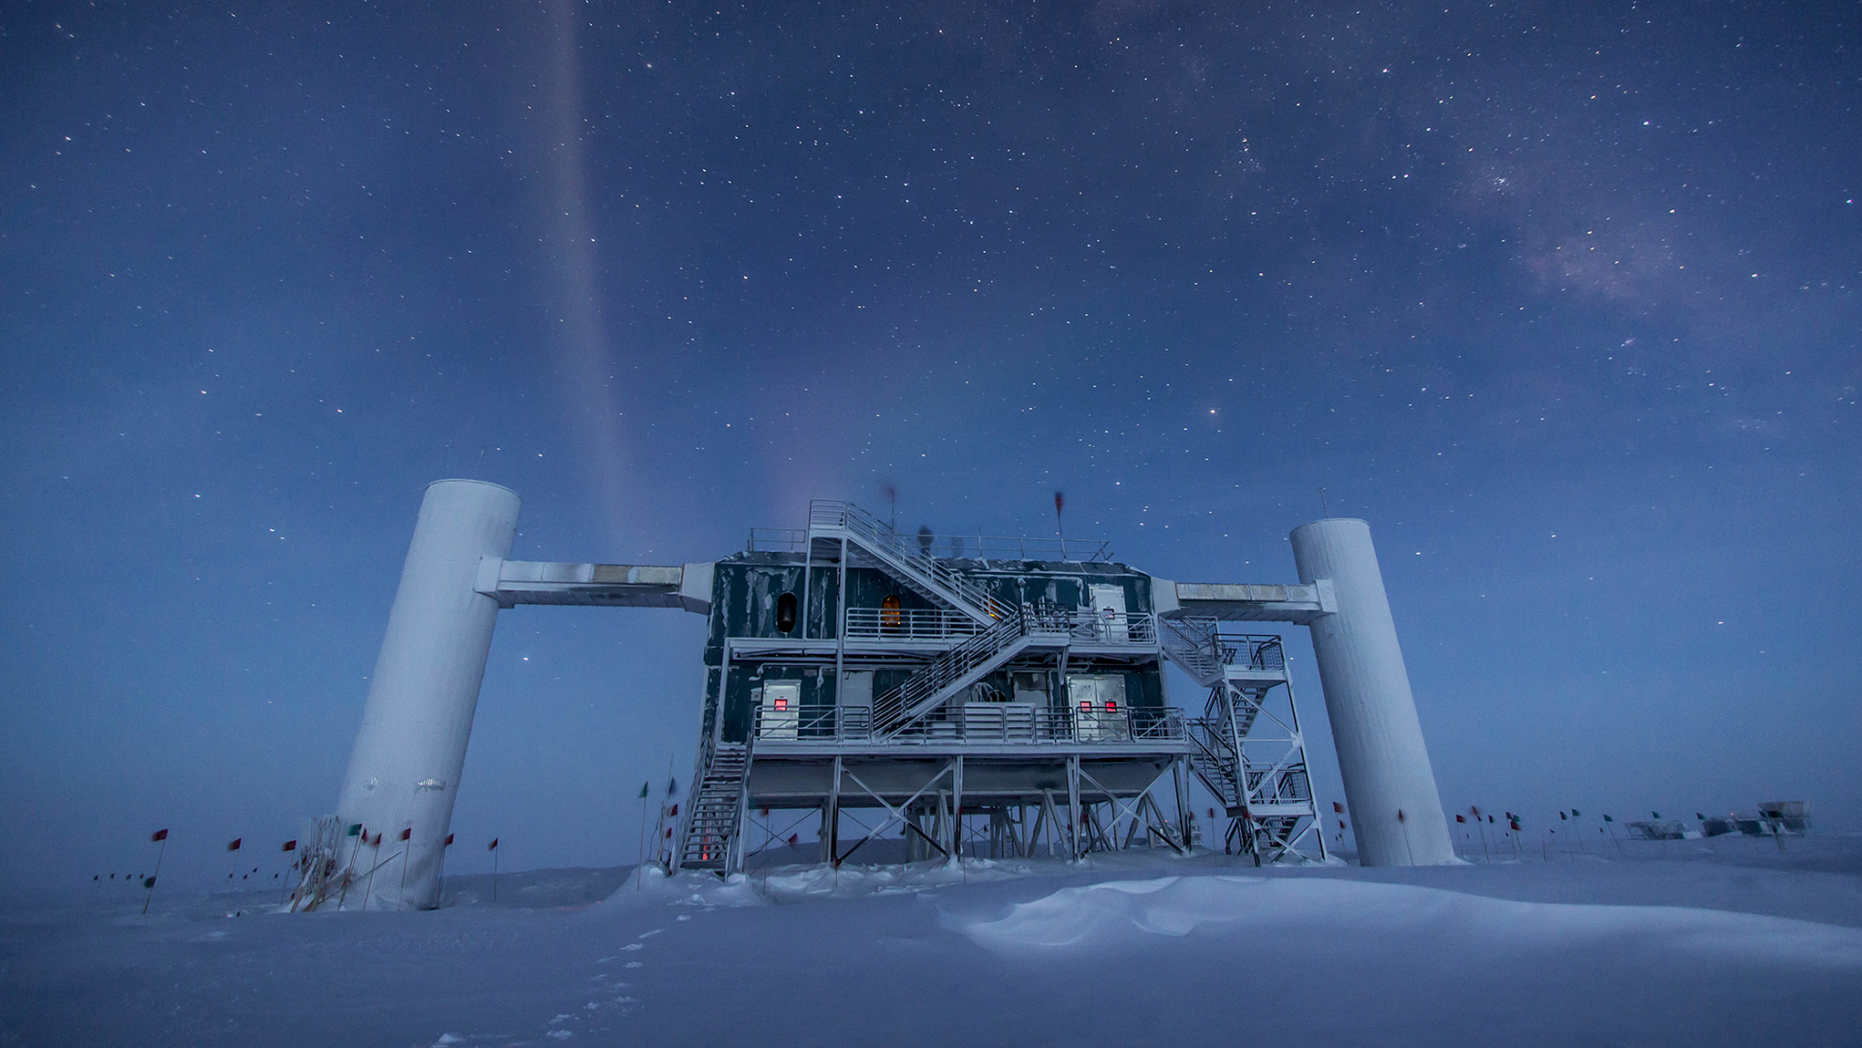 The surface facility for the IceCube experiment, which is located under nearly 1 mile (1.6 kilometers) of ice in Antarctica. IceCube suggests ghostly neutrinos don't exist, but a new experiment says they do.